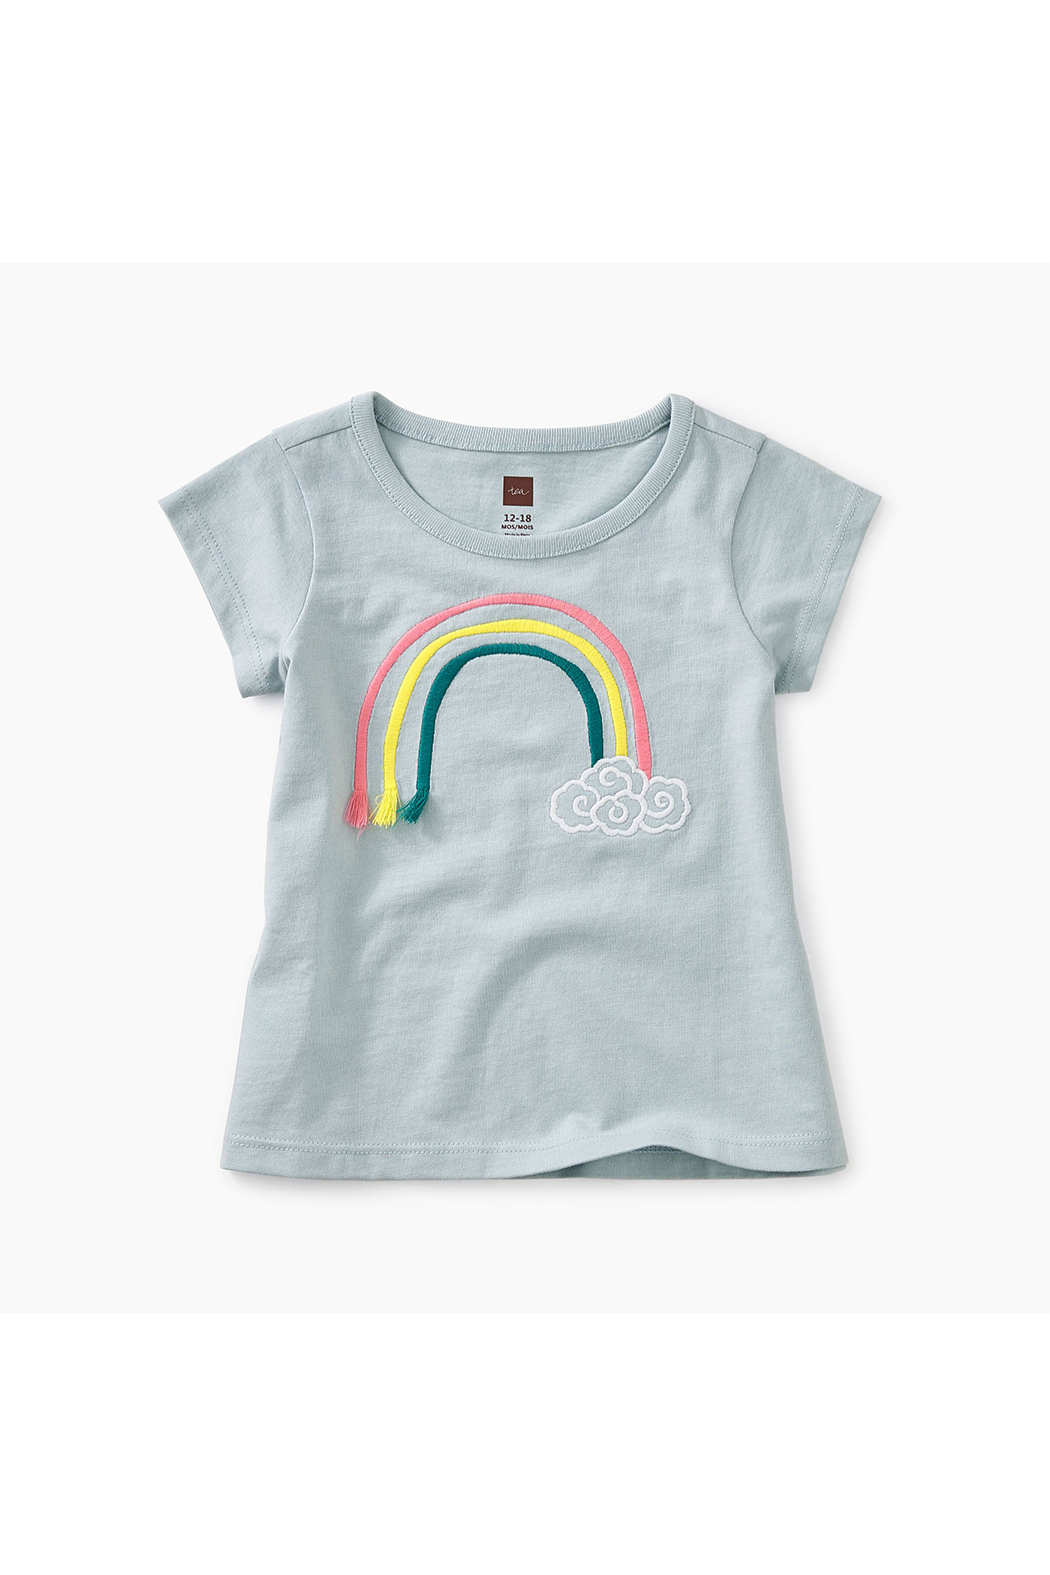 Tea Collection 3D Rainbow Baby Graphic Tee - Front Cropped Image